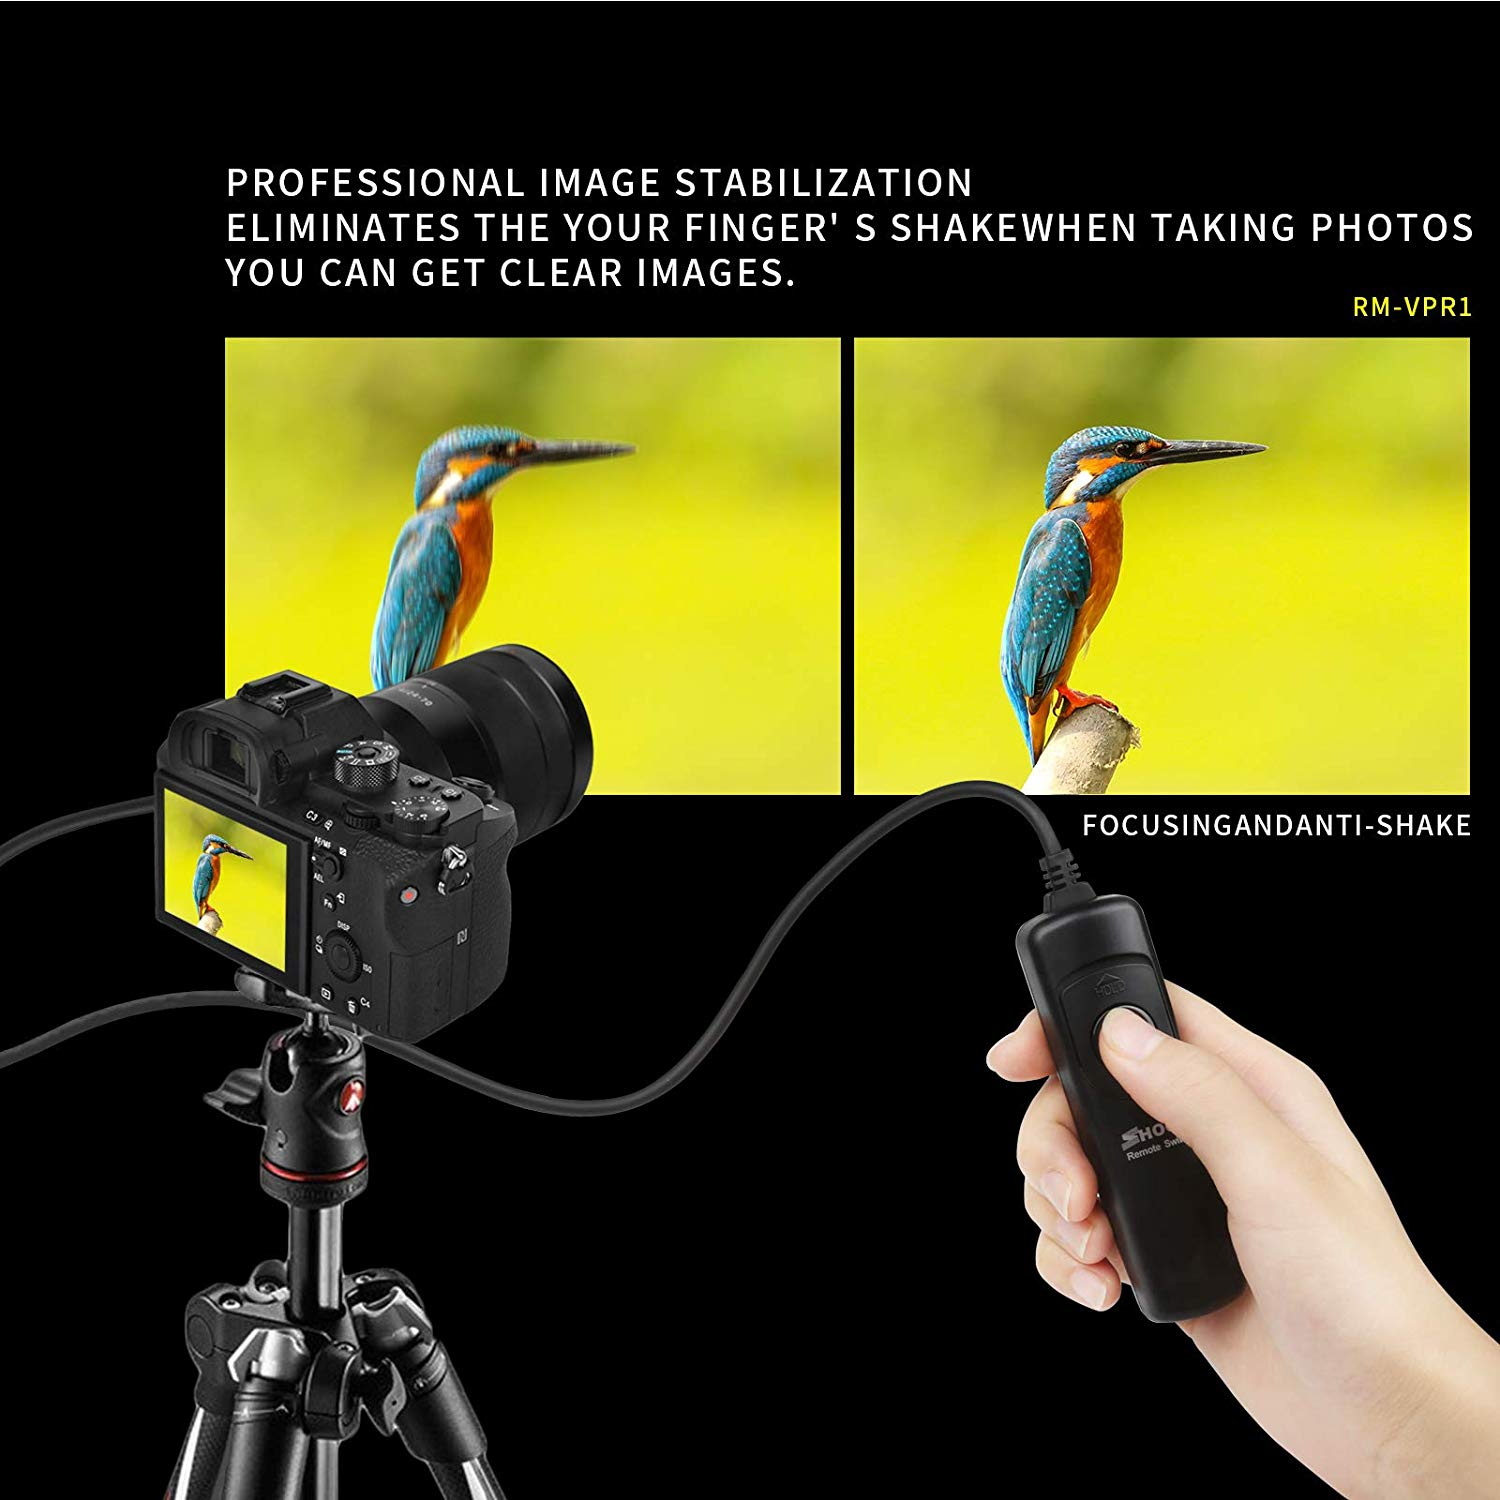 Remote Shutter Control Shoot RM-VPR1 for Sony Alpha A7r SLT-A58 A7 / A7II / A6000